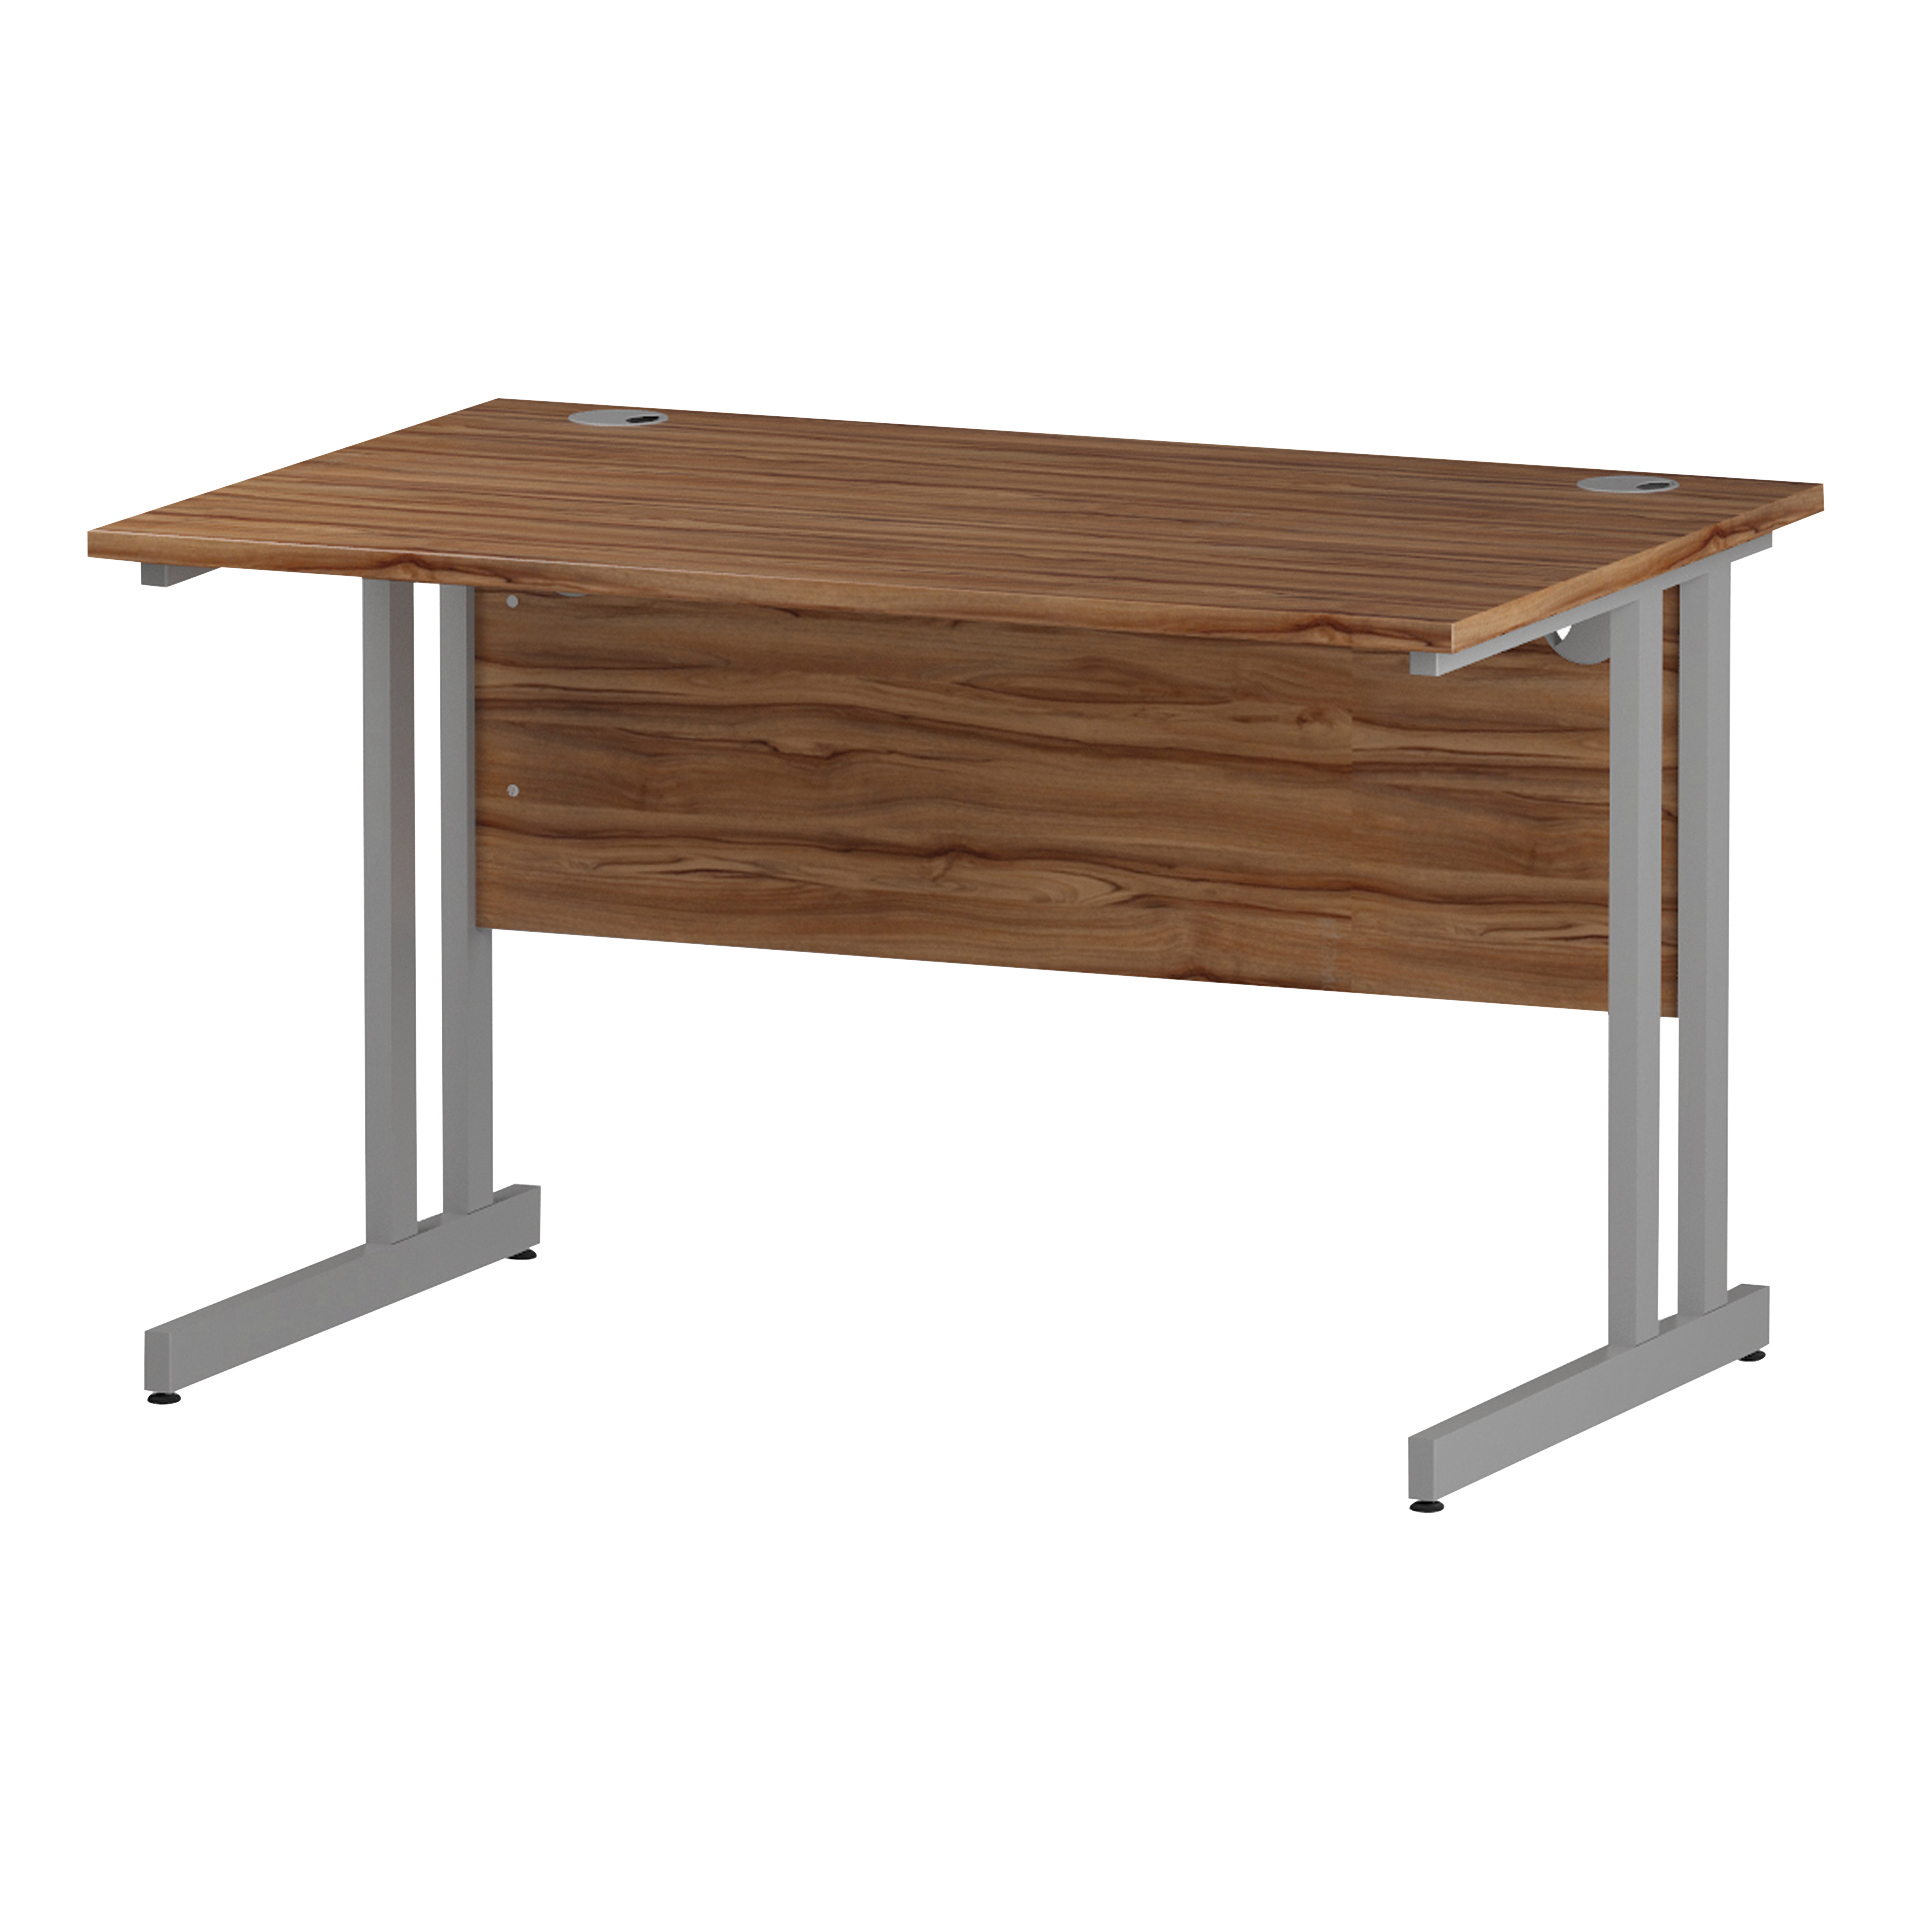 Trexus Rectangular Desk Silver Cantilever Leg 1200x800mm Walnut Ref I001900